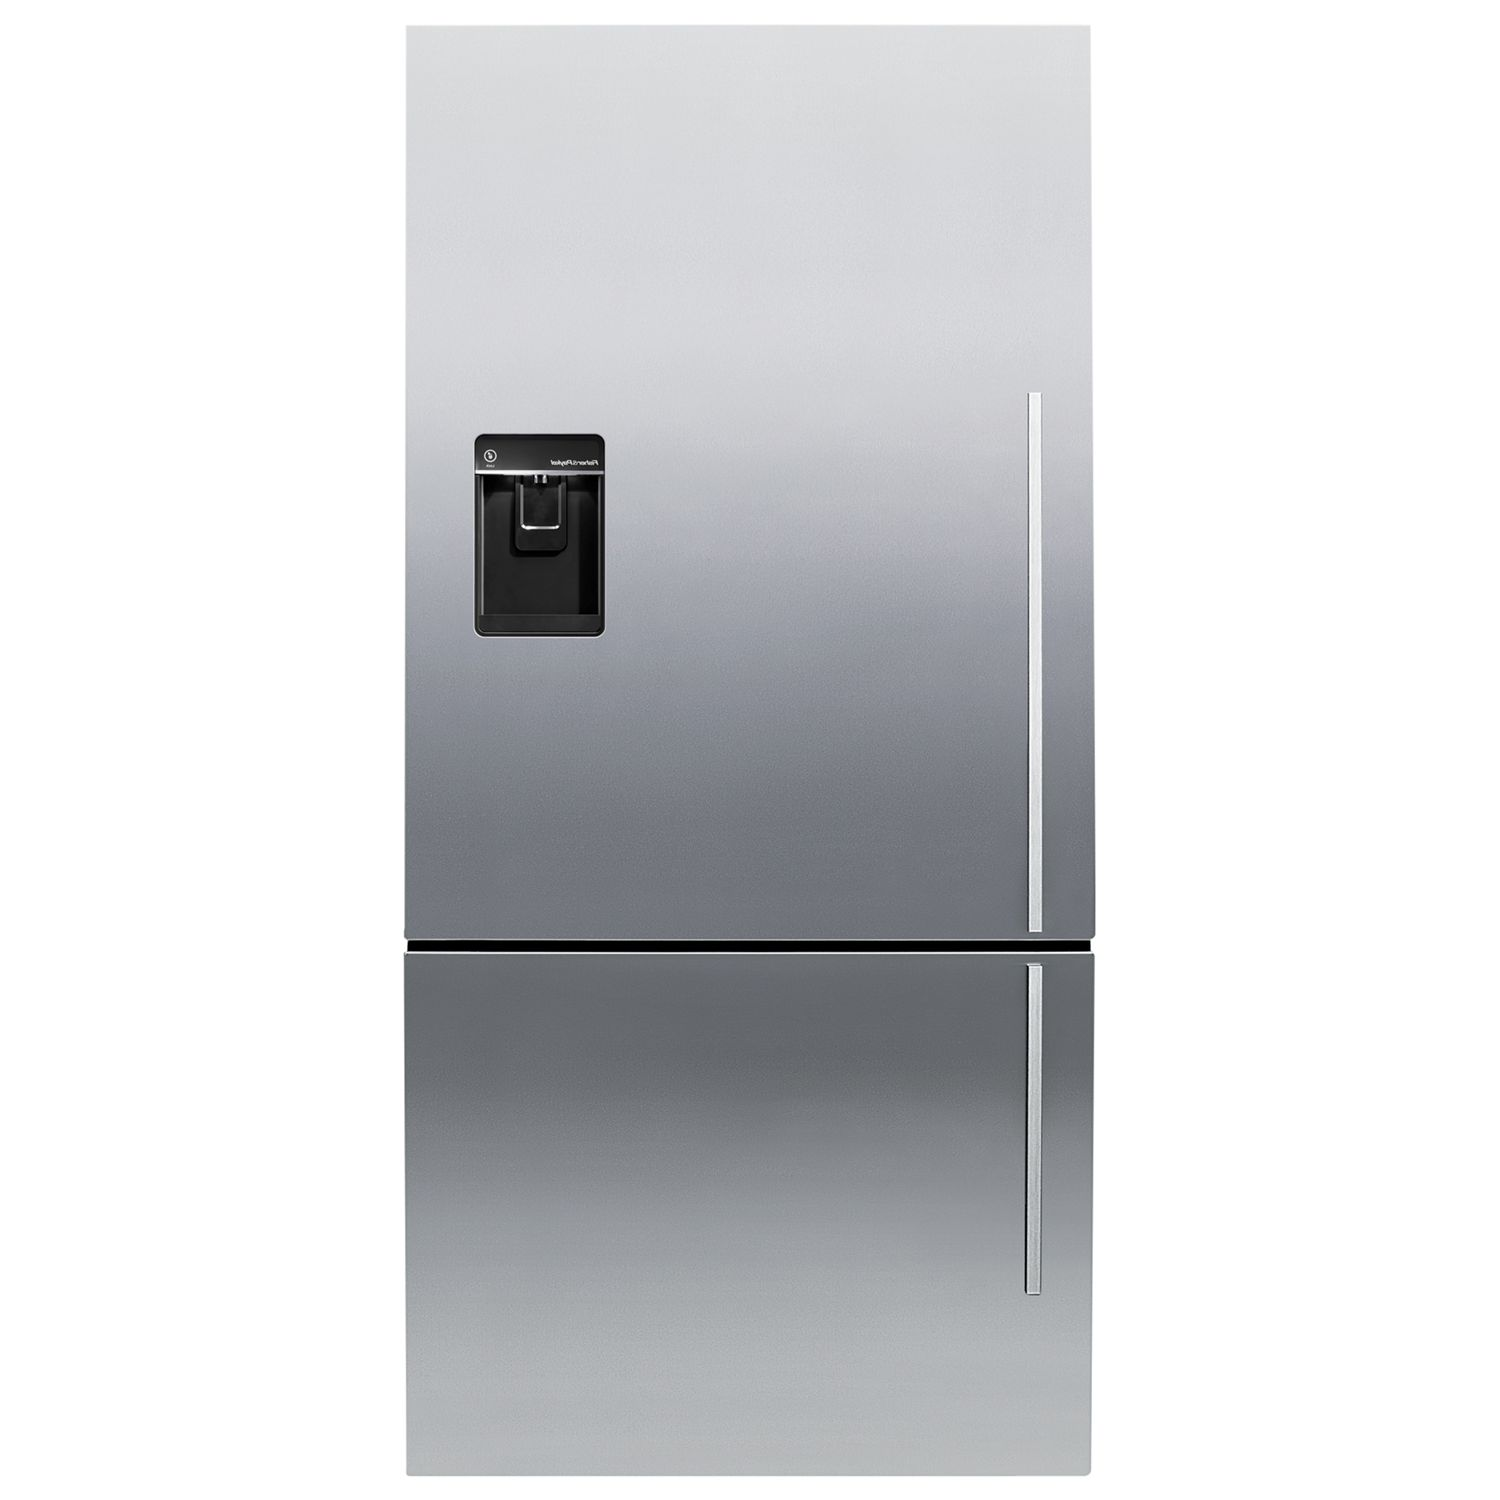 Fisher & Paykel Fisher & Paykel E522BLXFDU4 Fridge Freezer, A+ Energy Rating, 80cm Wide, Stainless Steel